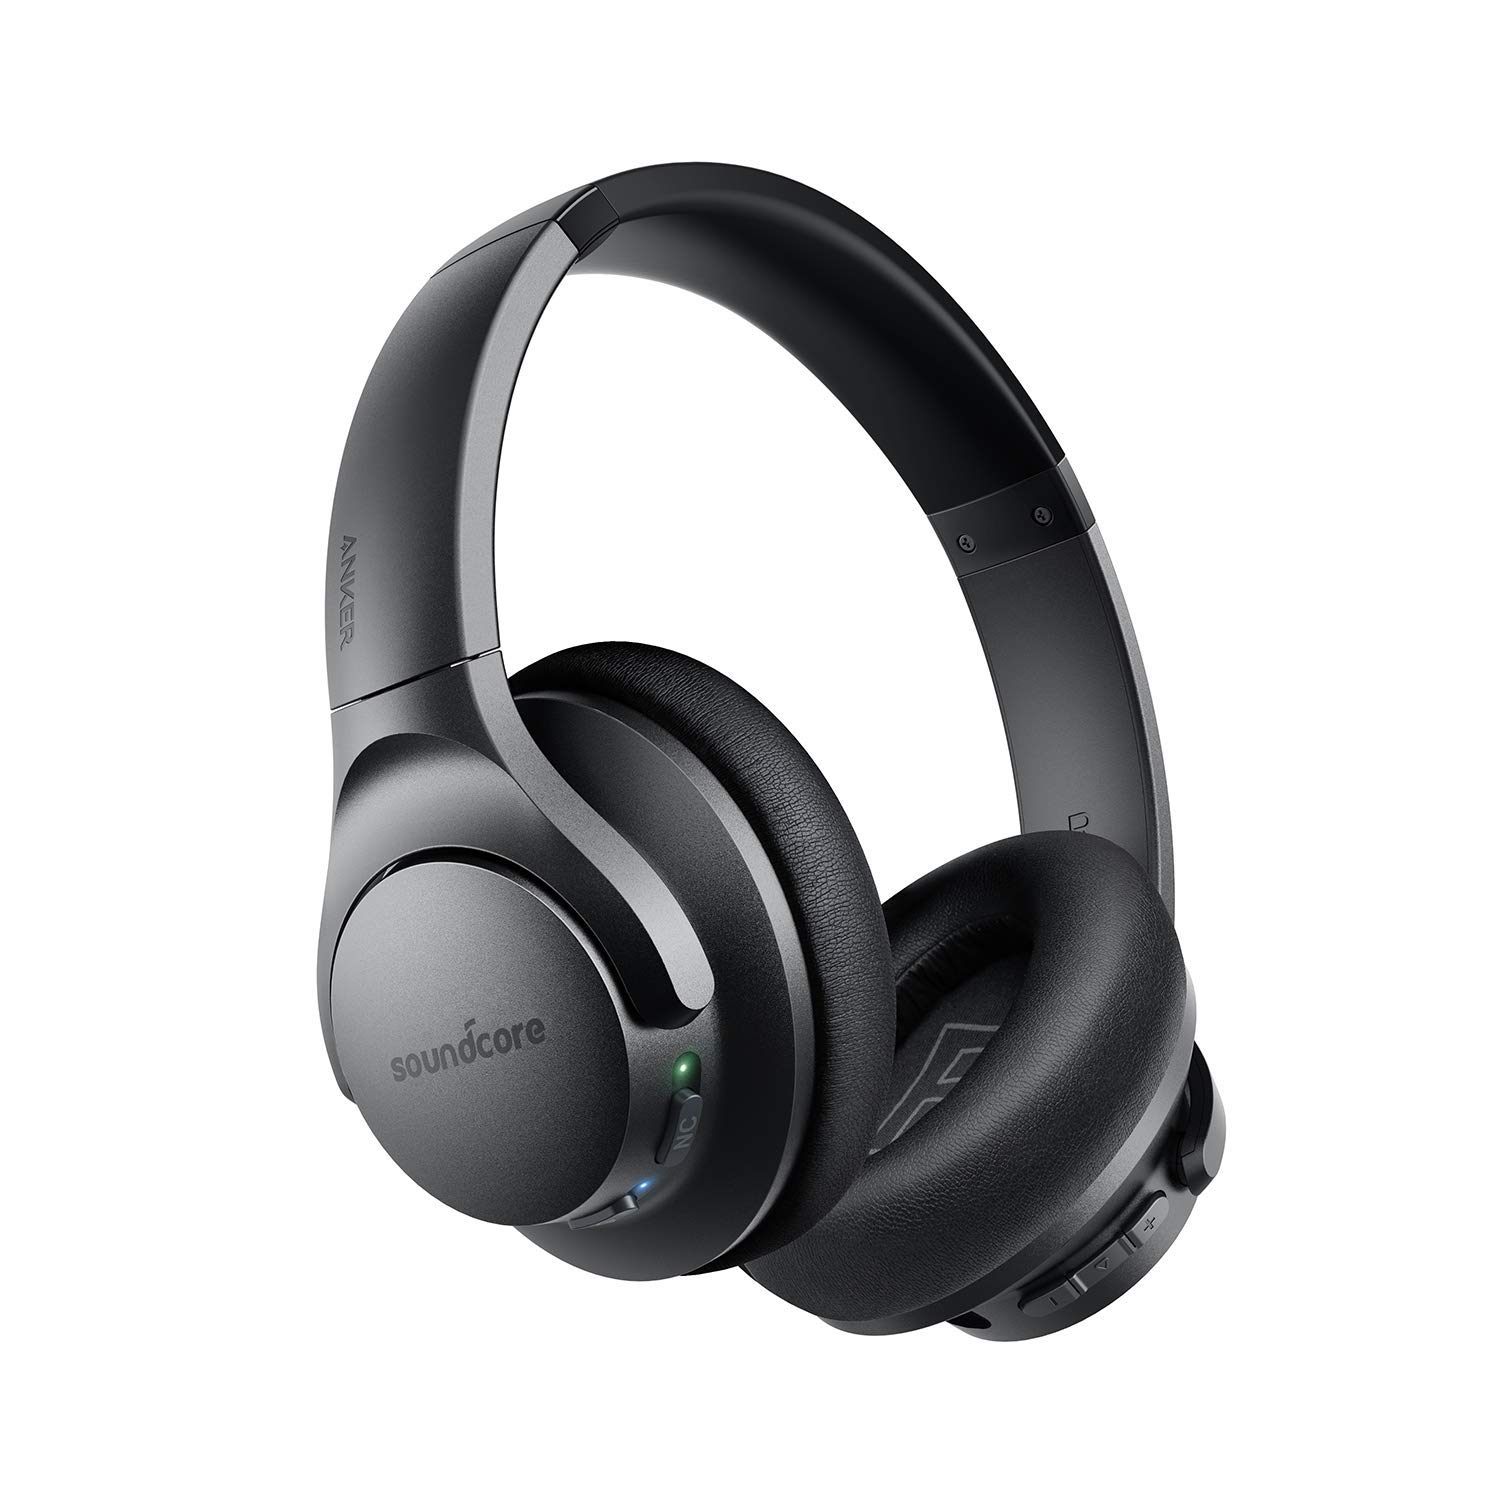 Soundcore Cancelling Headphones Wireless Bluetooth